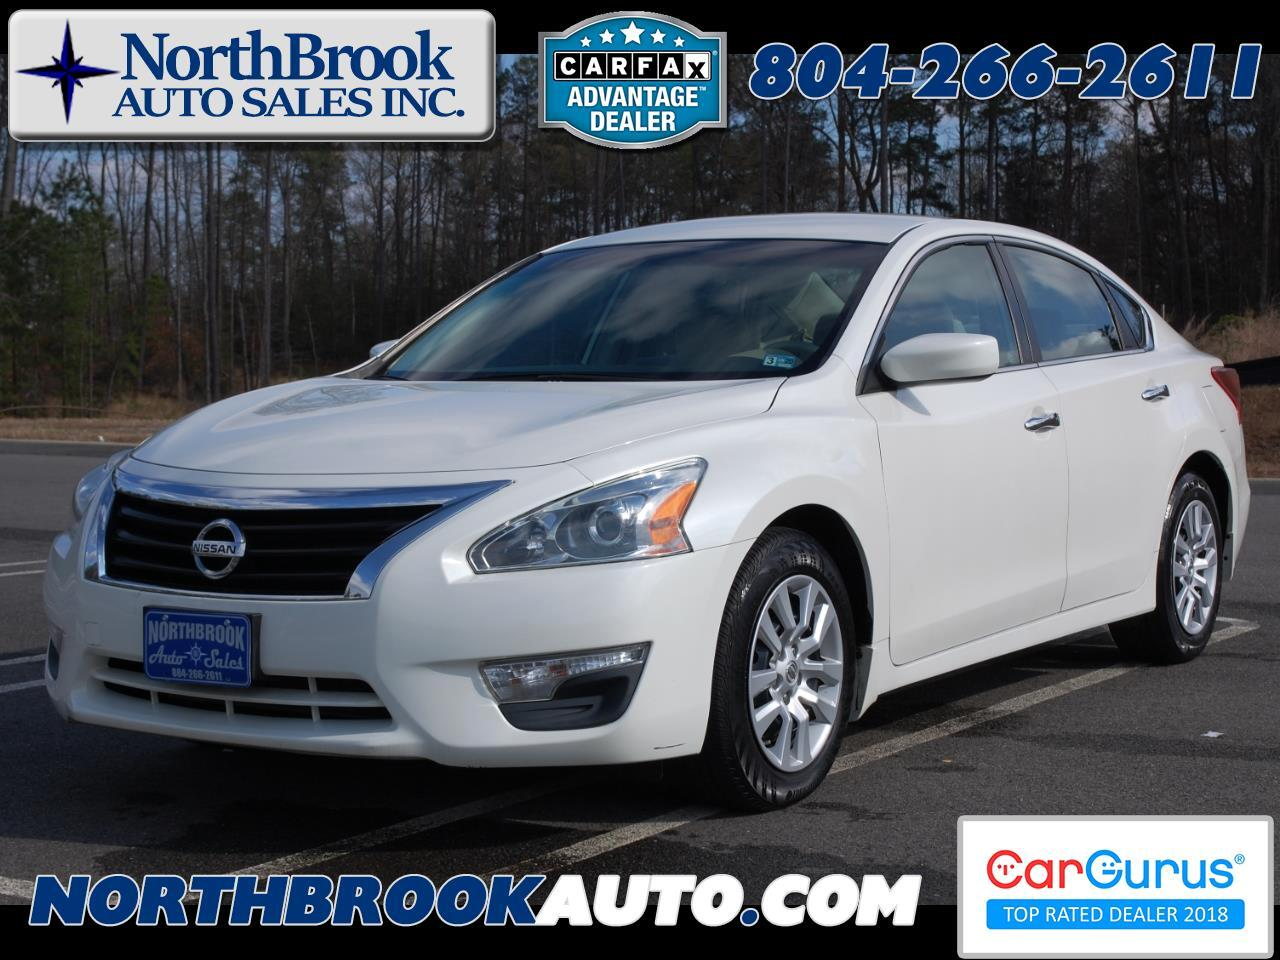 2013 Nissan Altima 4dr Sdn I4 2.5 S